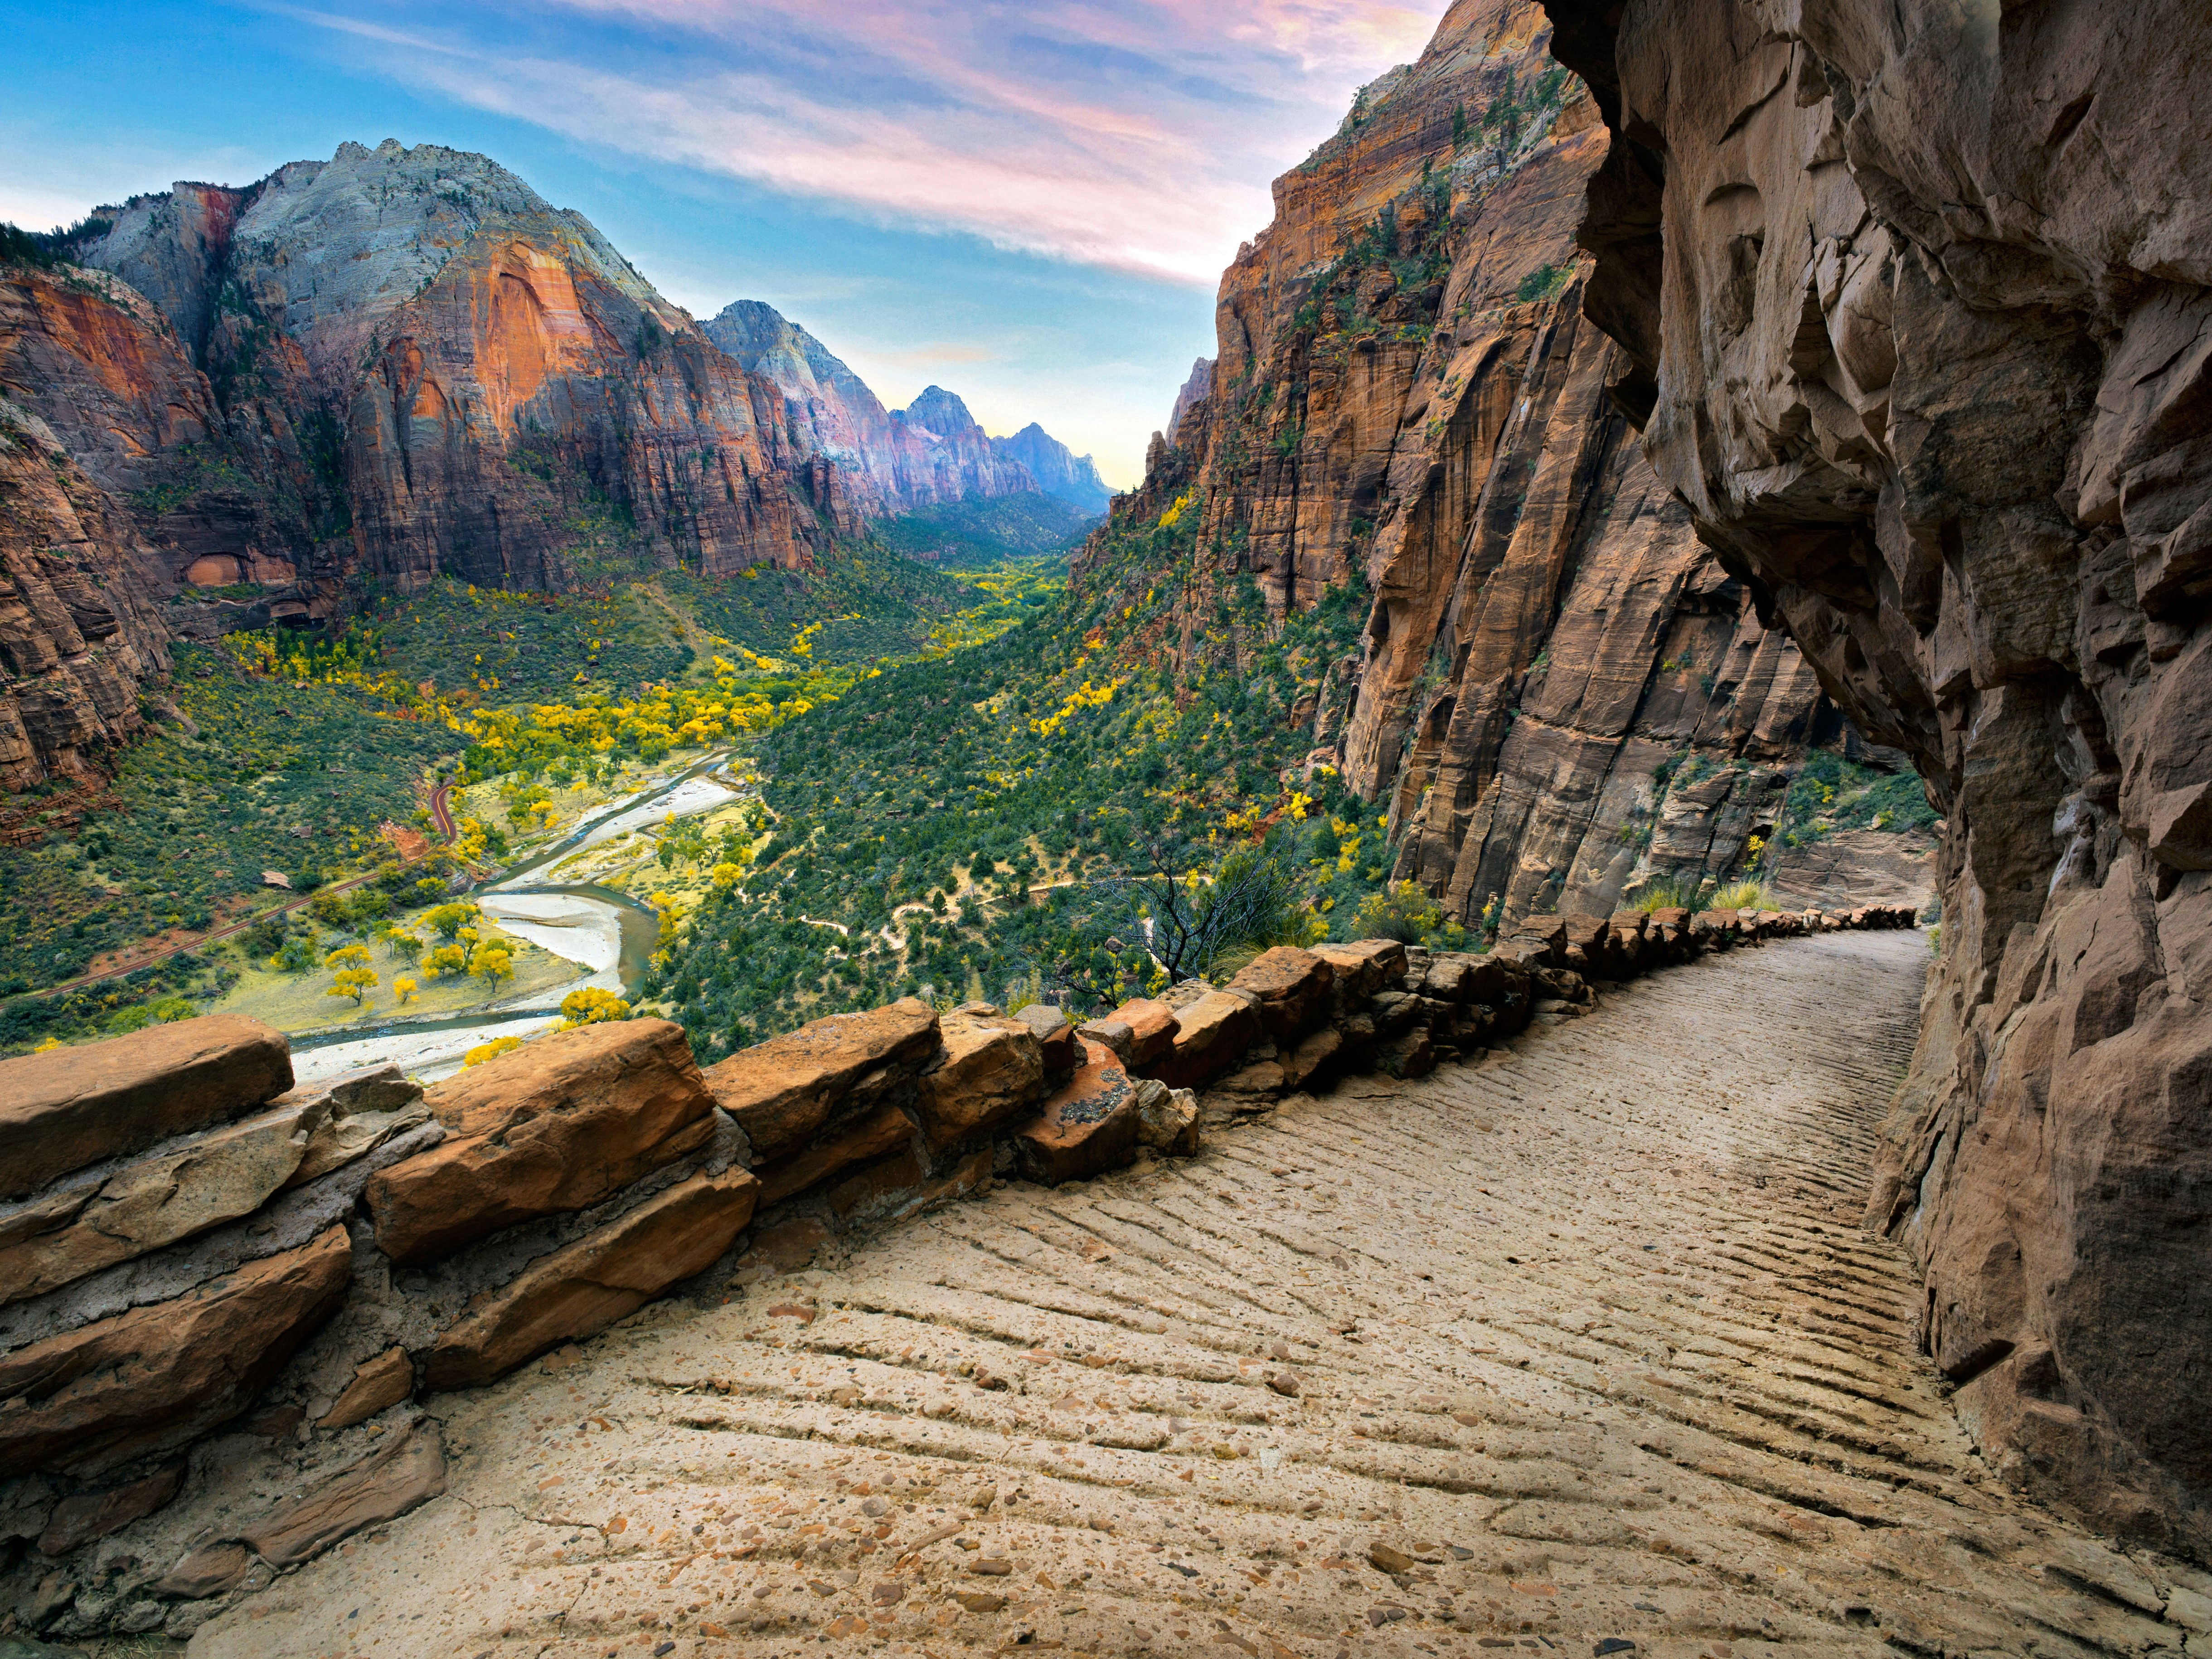 Angel S Landing In Zion National Park 4k Ultra Hd Wallpaper